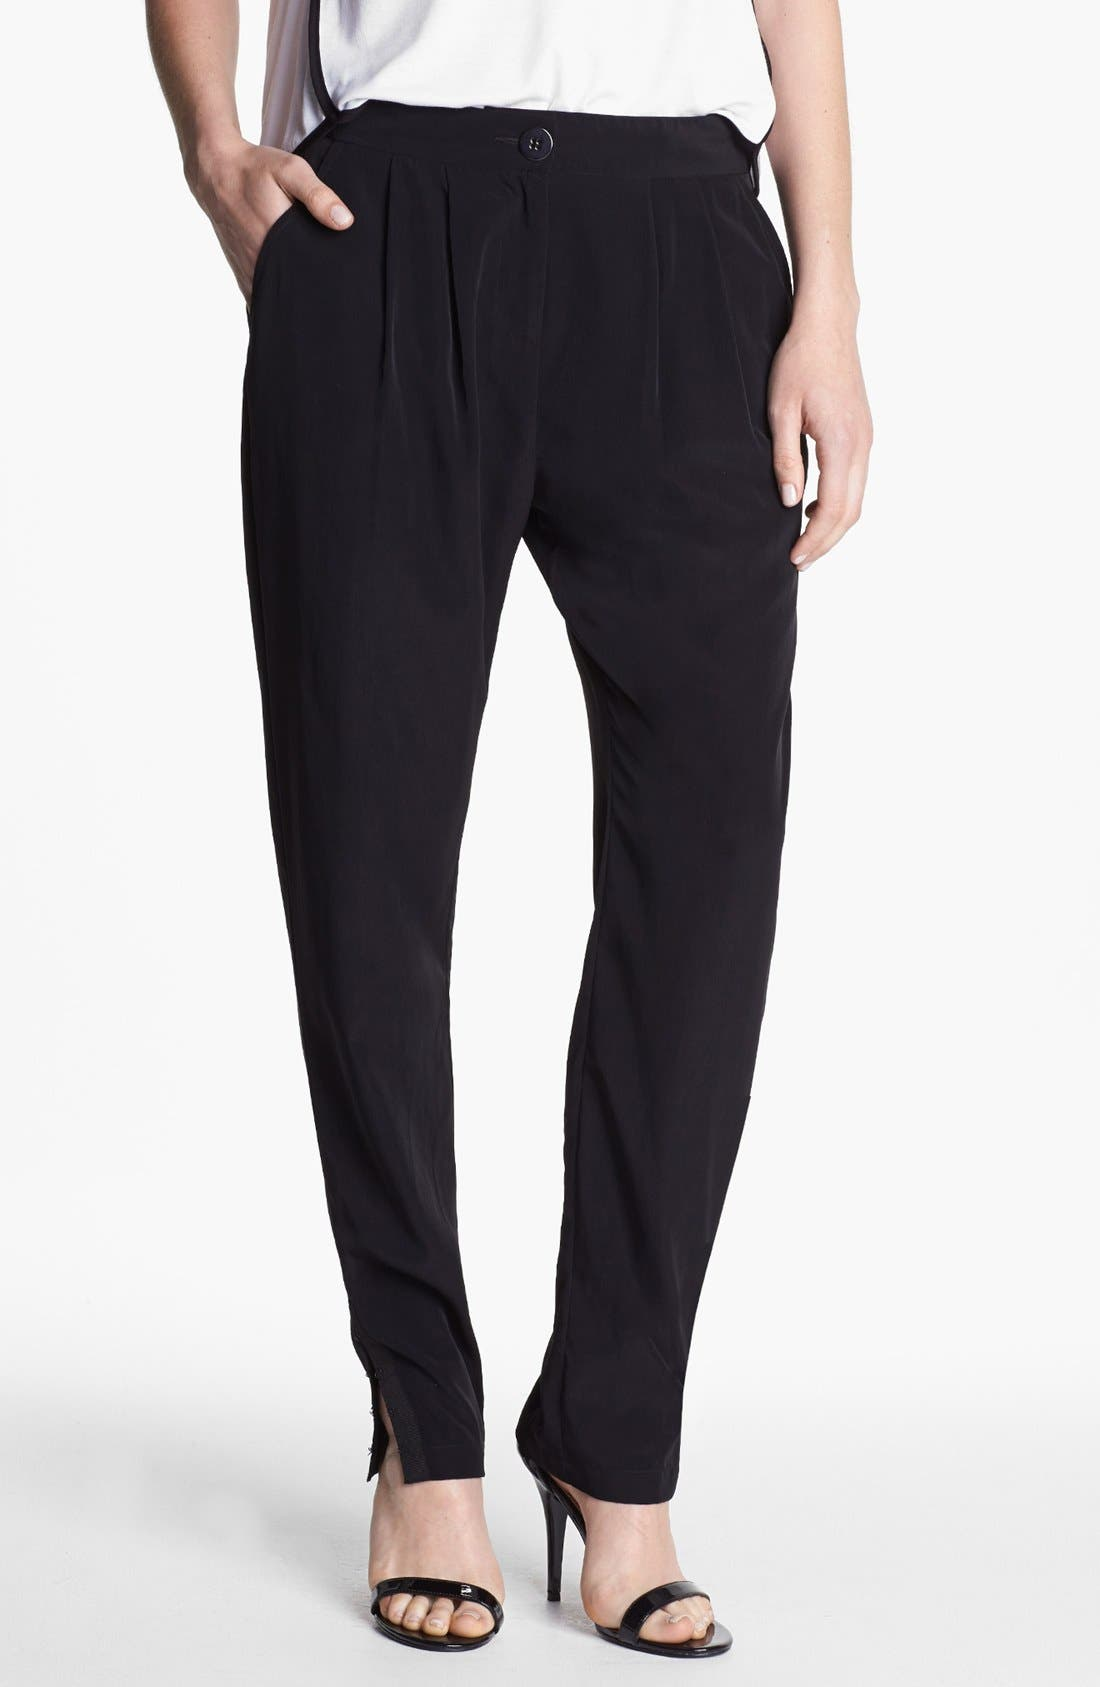 Main Image - Kenneth Cole New York 'Sharla' Pleat Pants